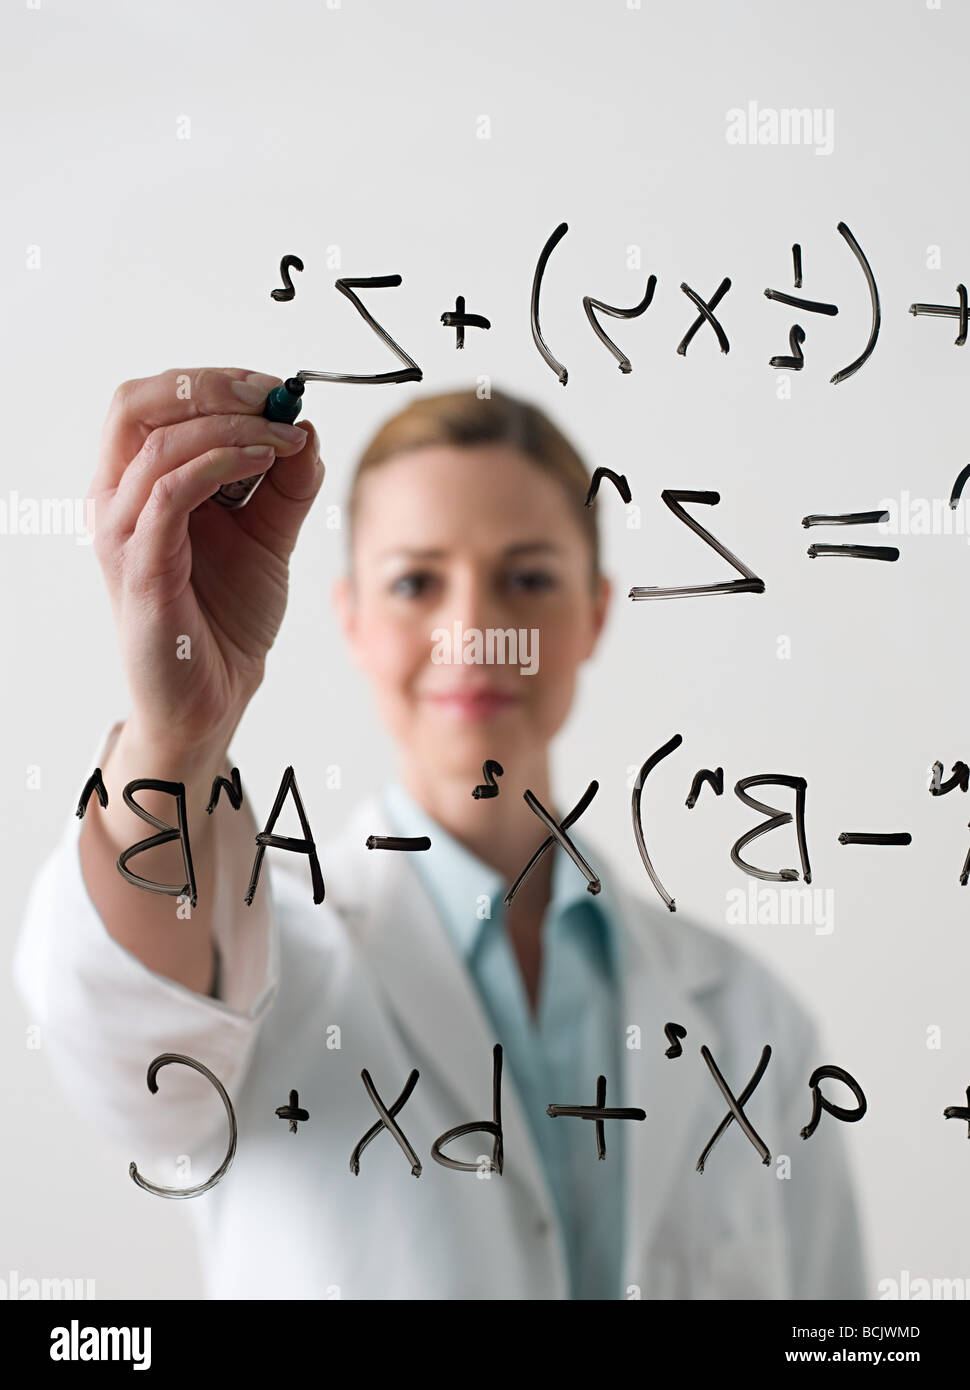 Scientist writing a formula - Stock Image